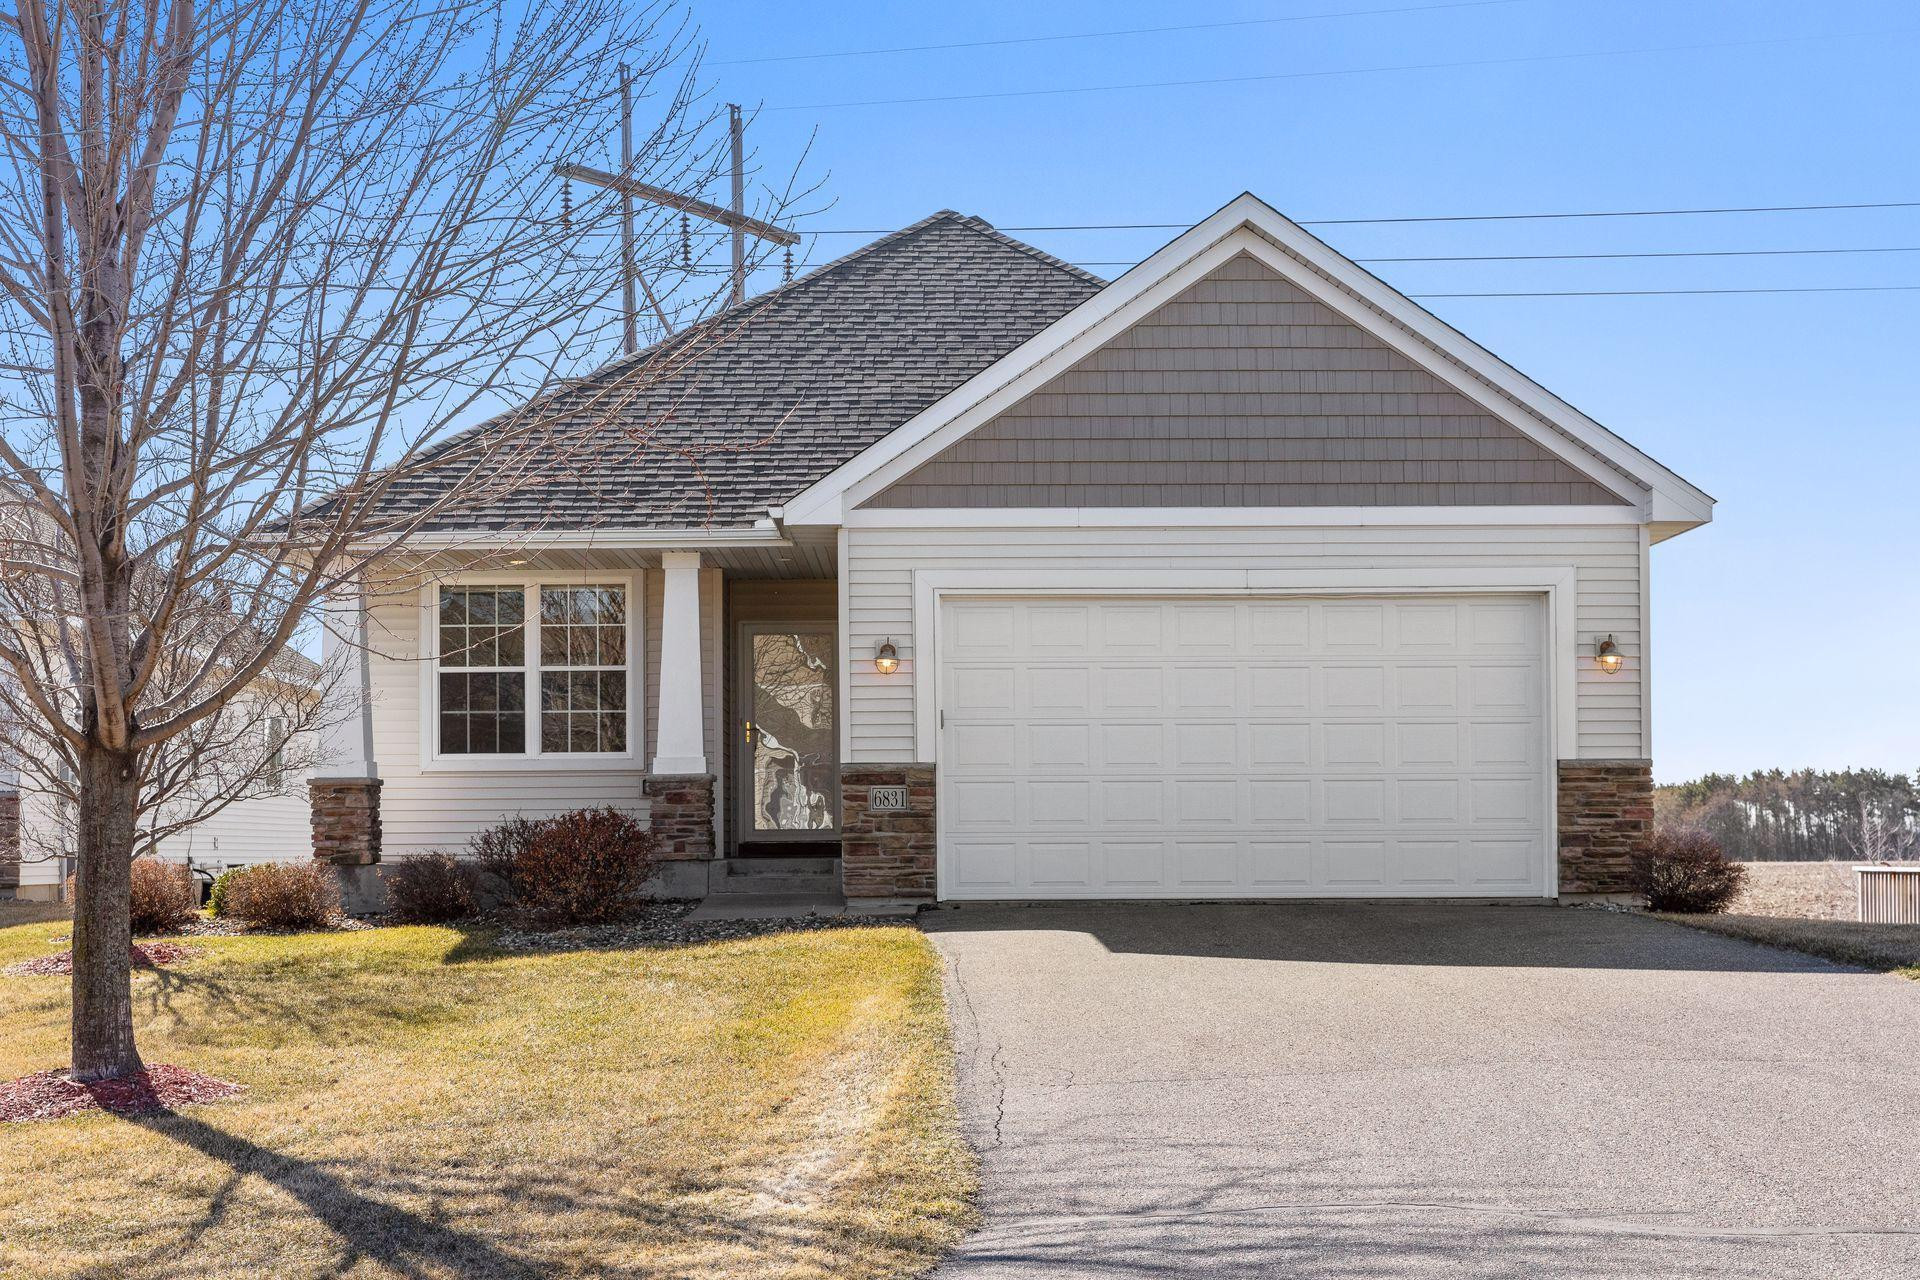 6831 99th Street S, Cottage Grove, MN 55016